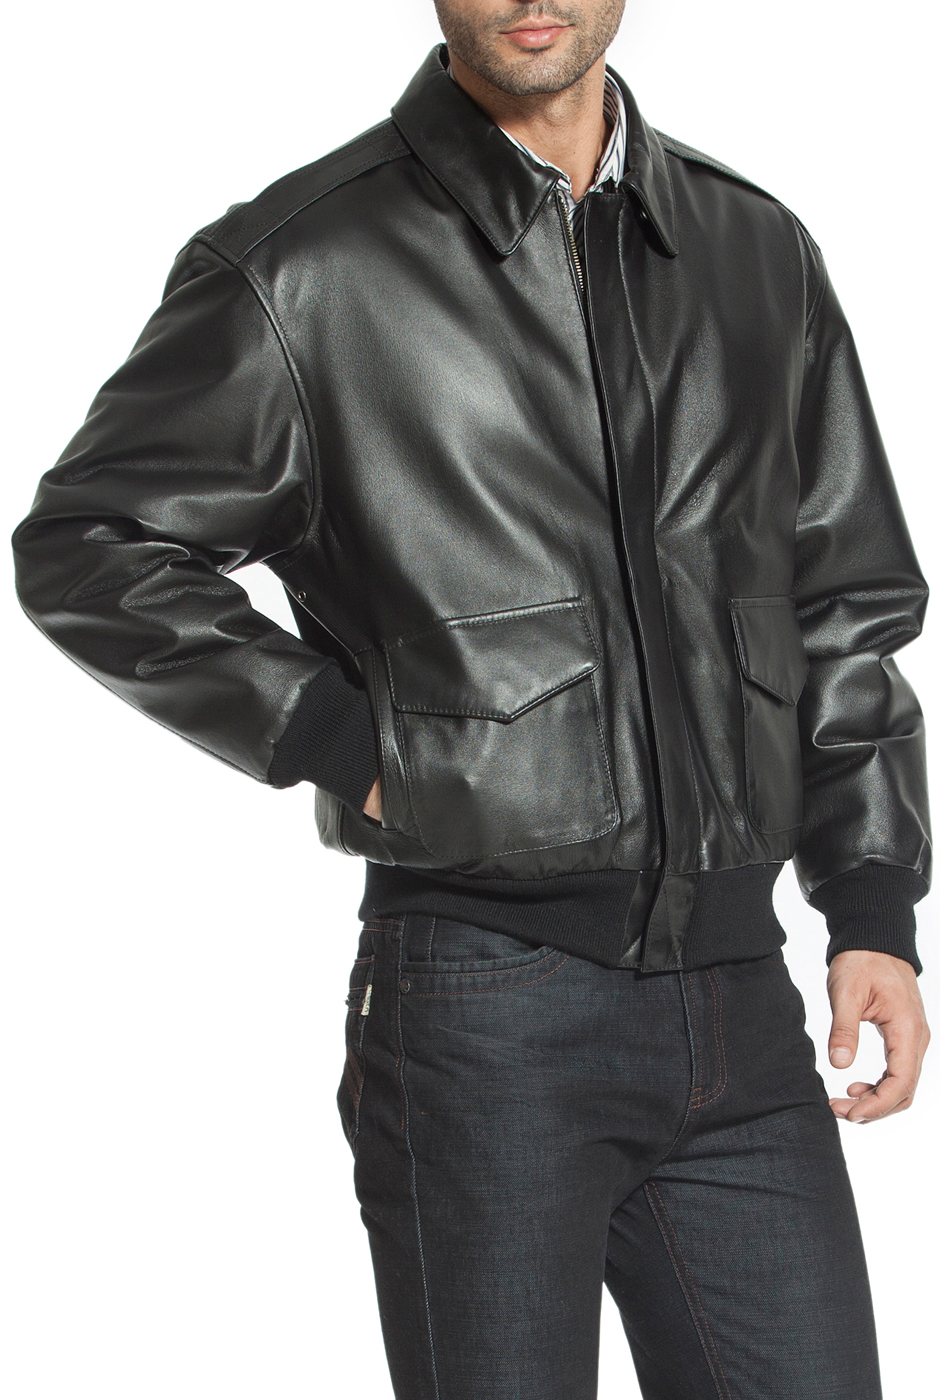 70f20ab5b Men's Air Force A-2 Leather Flight Bomber Jacket - Big & Tall